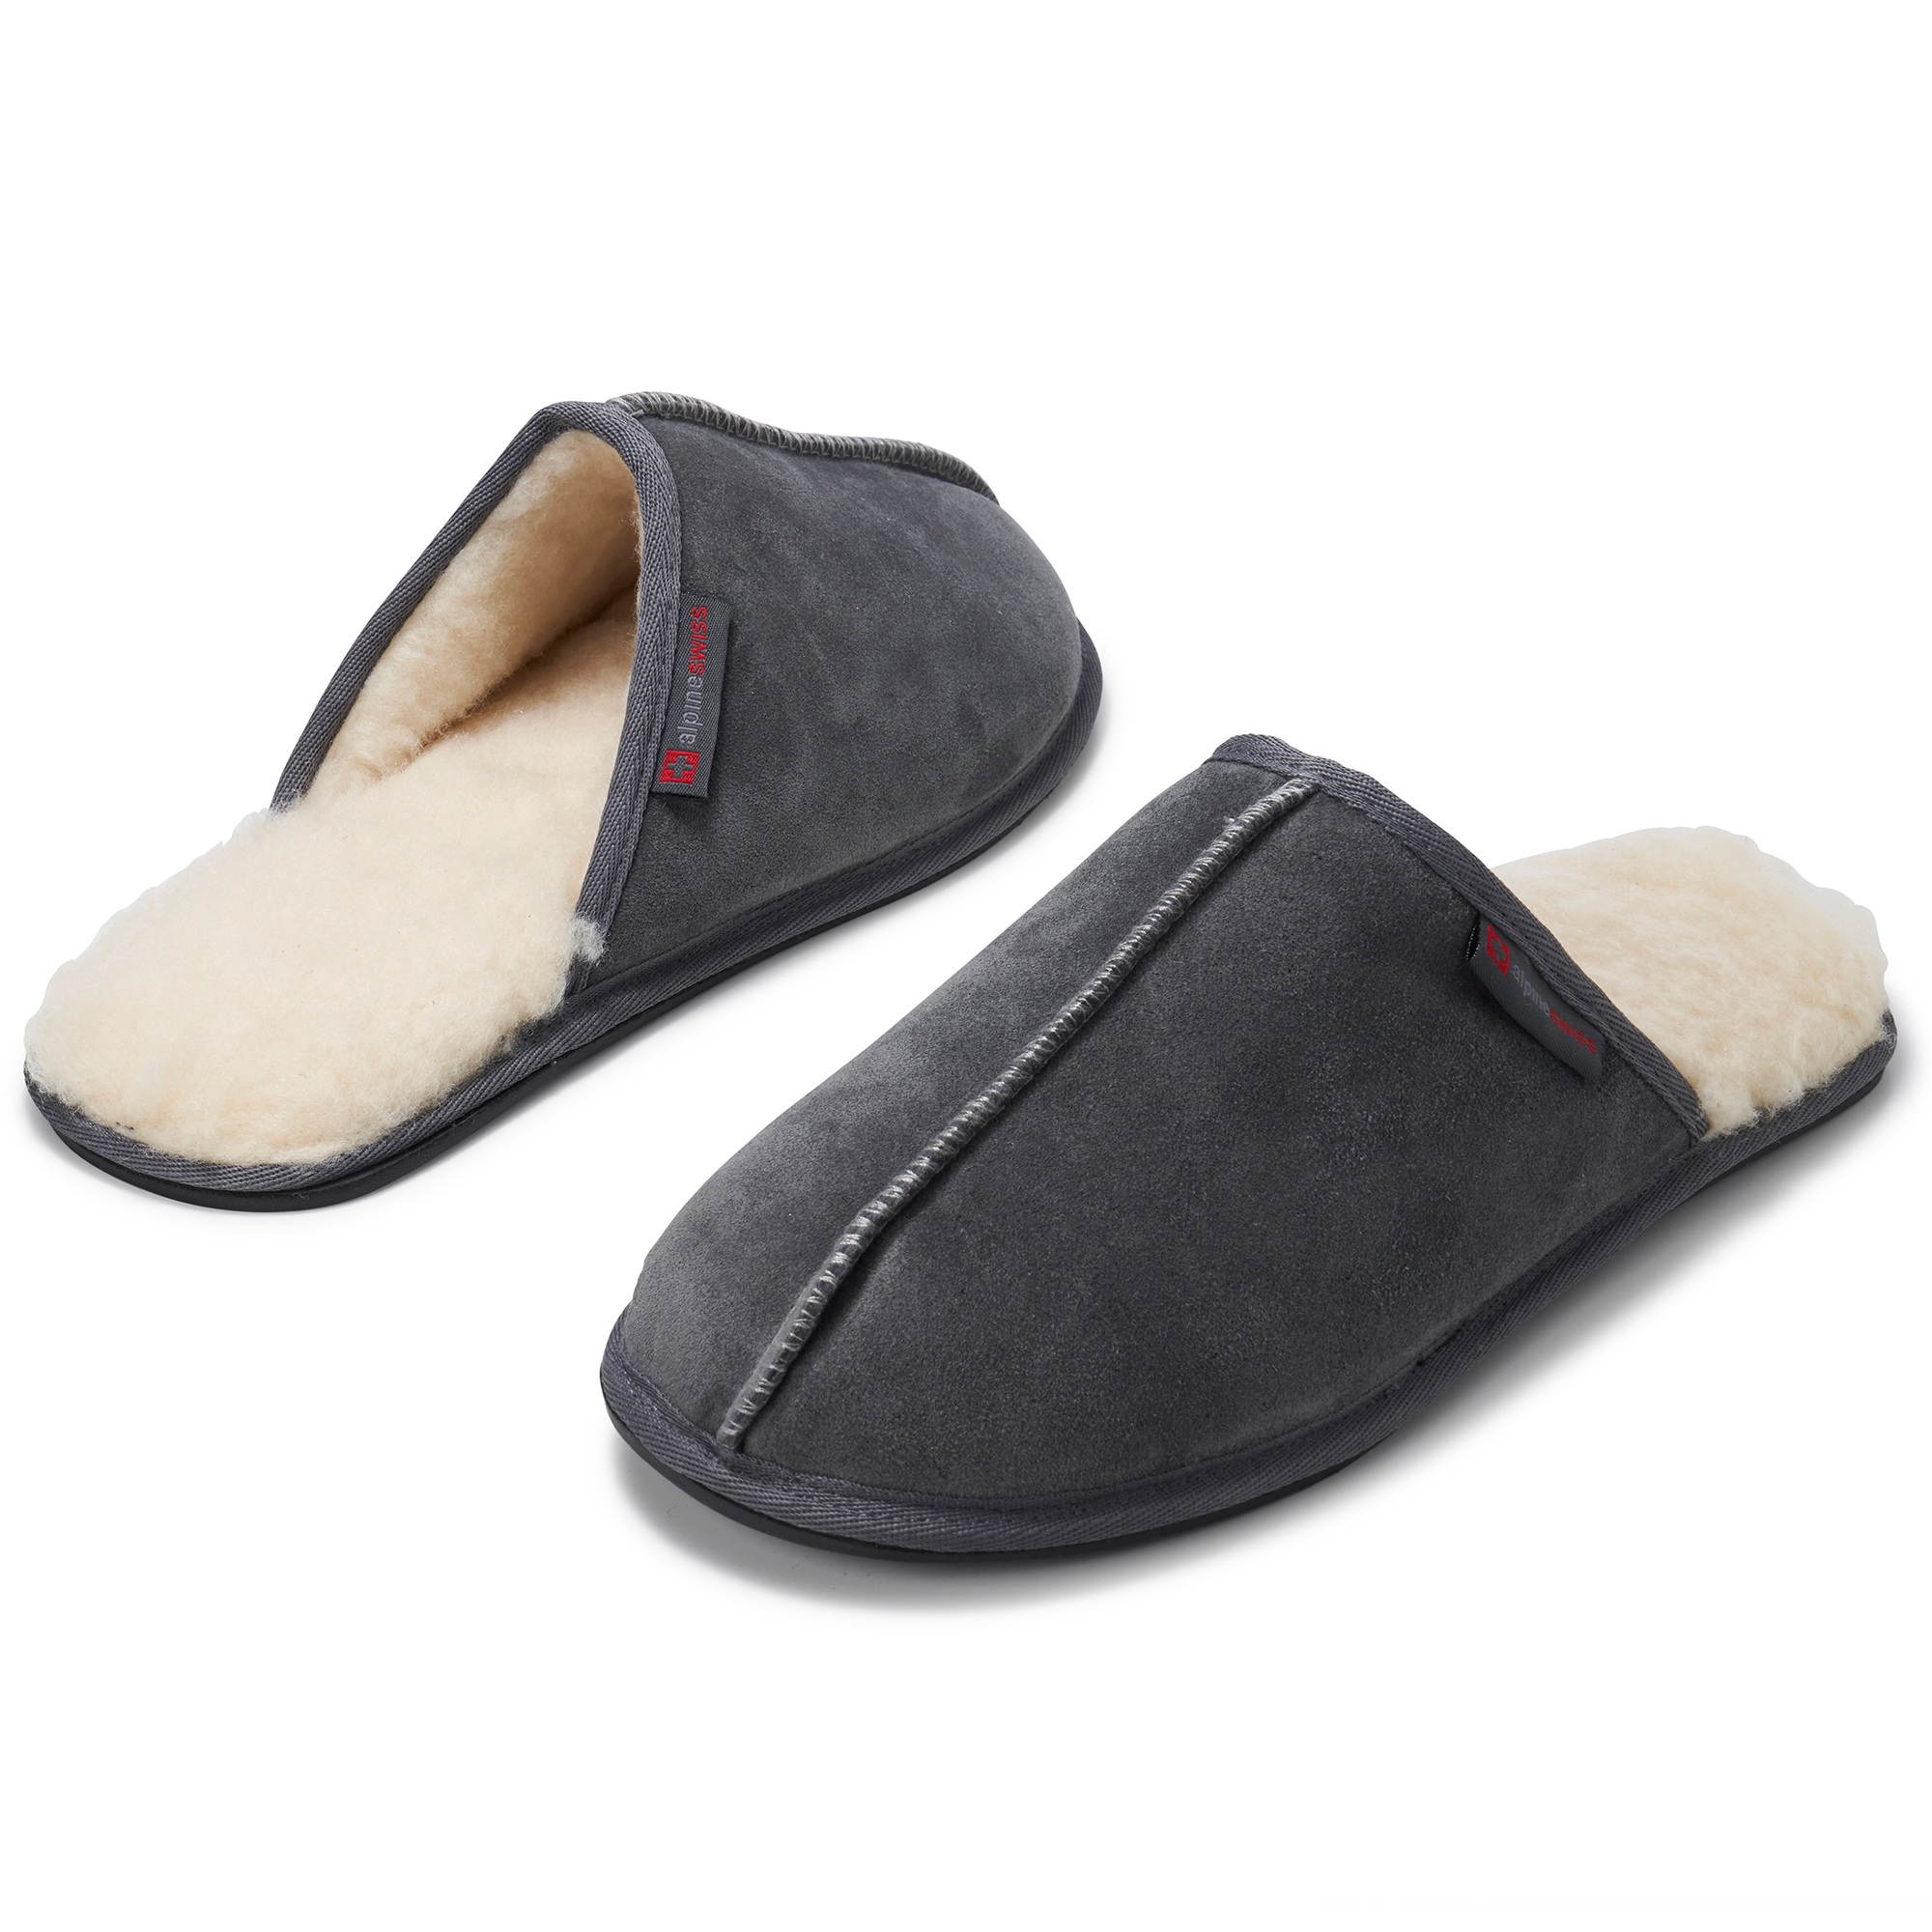 Alpine-Swiss-Mens-Suede-Memory-Foam-Scuff-Slippers-Comfort-Slip-On-House-Shoes thumbnail 26